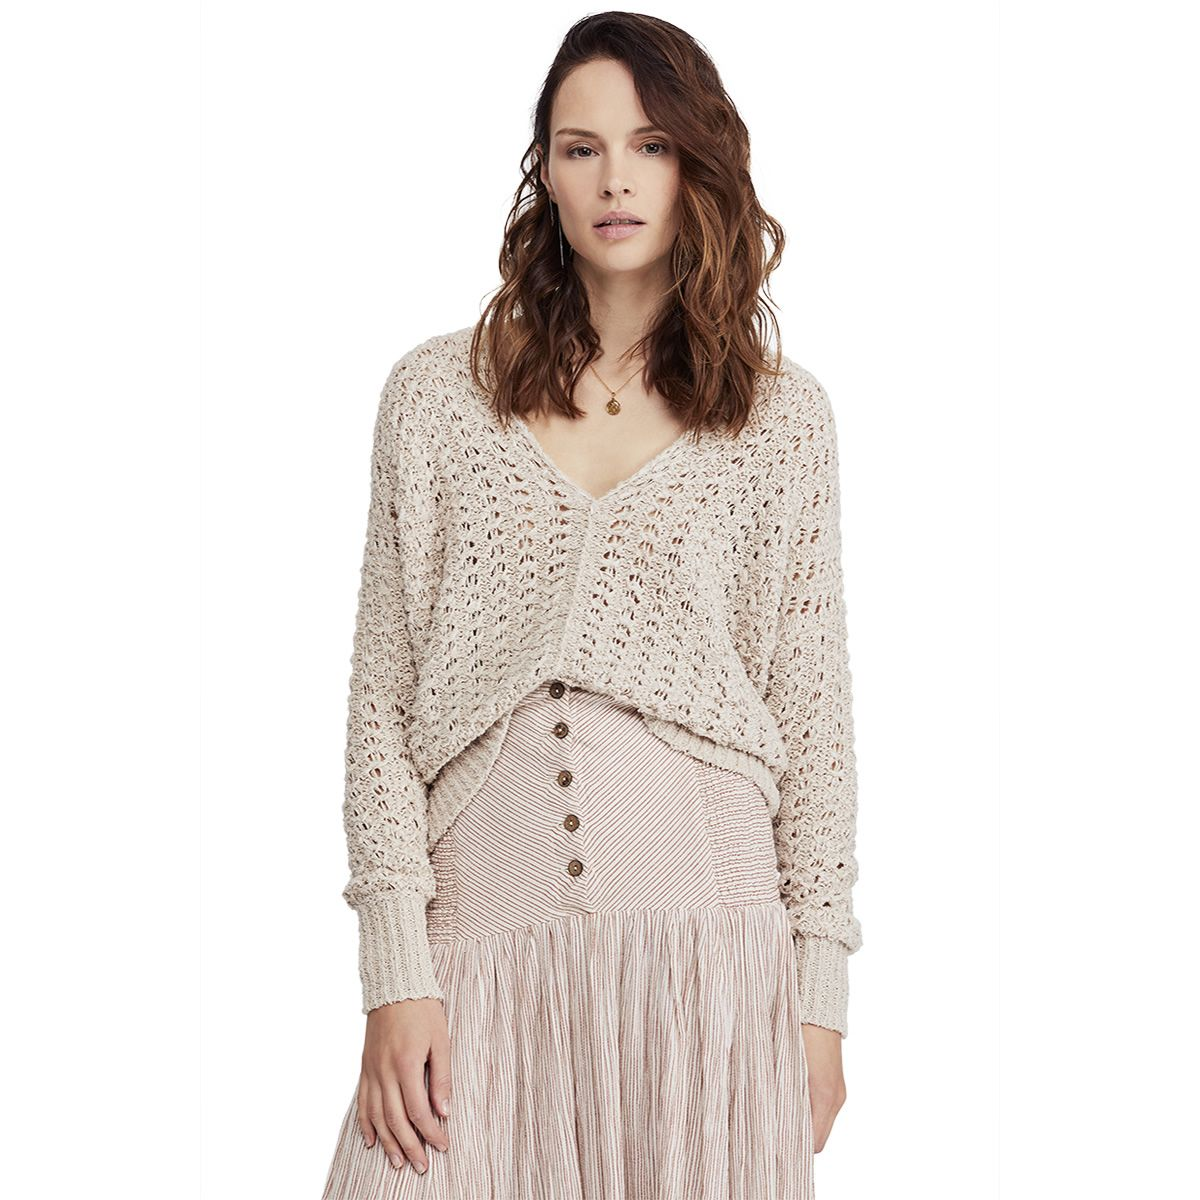 3274af45d139 Free People Clothing - Womens Apparel - Macy s